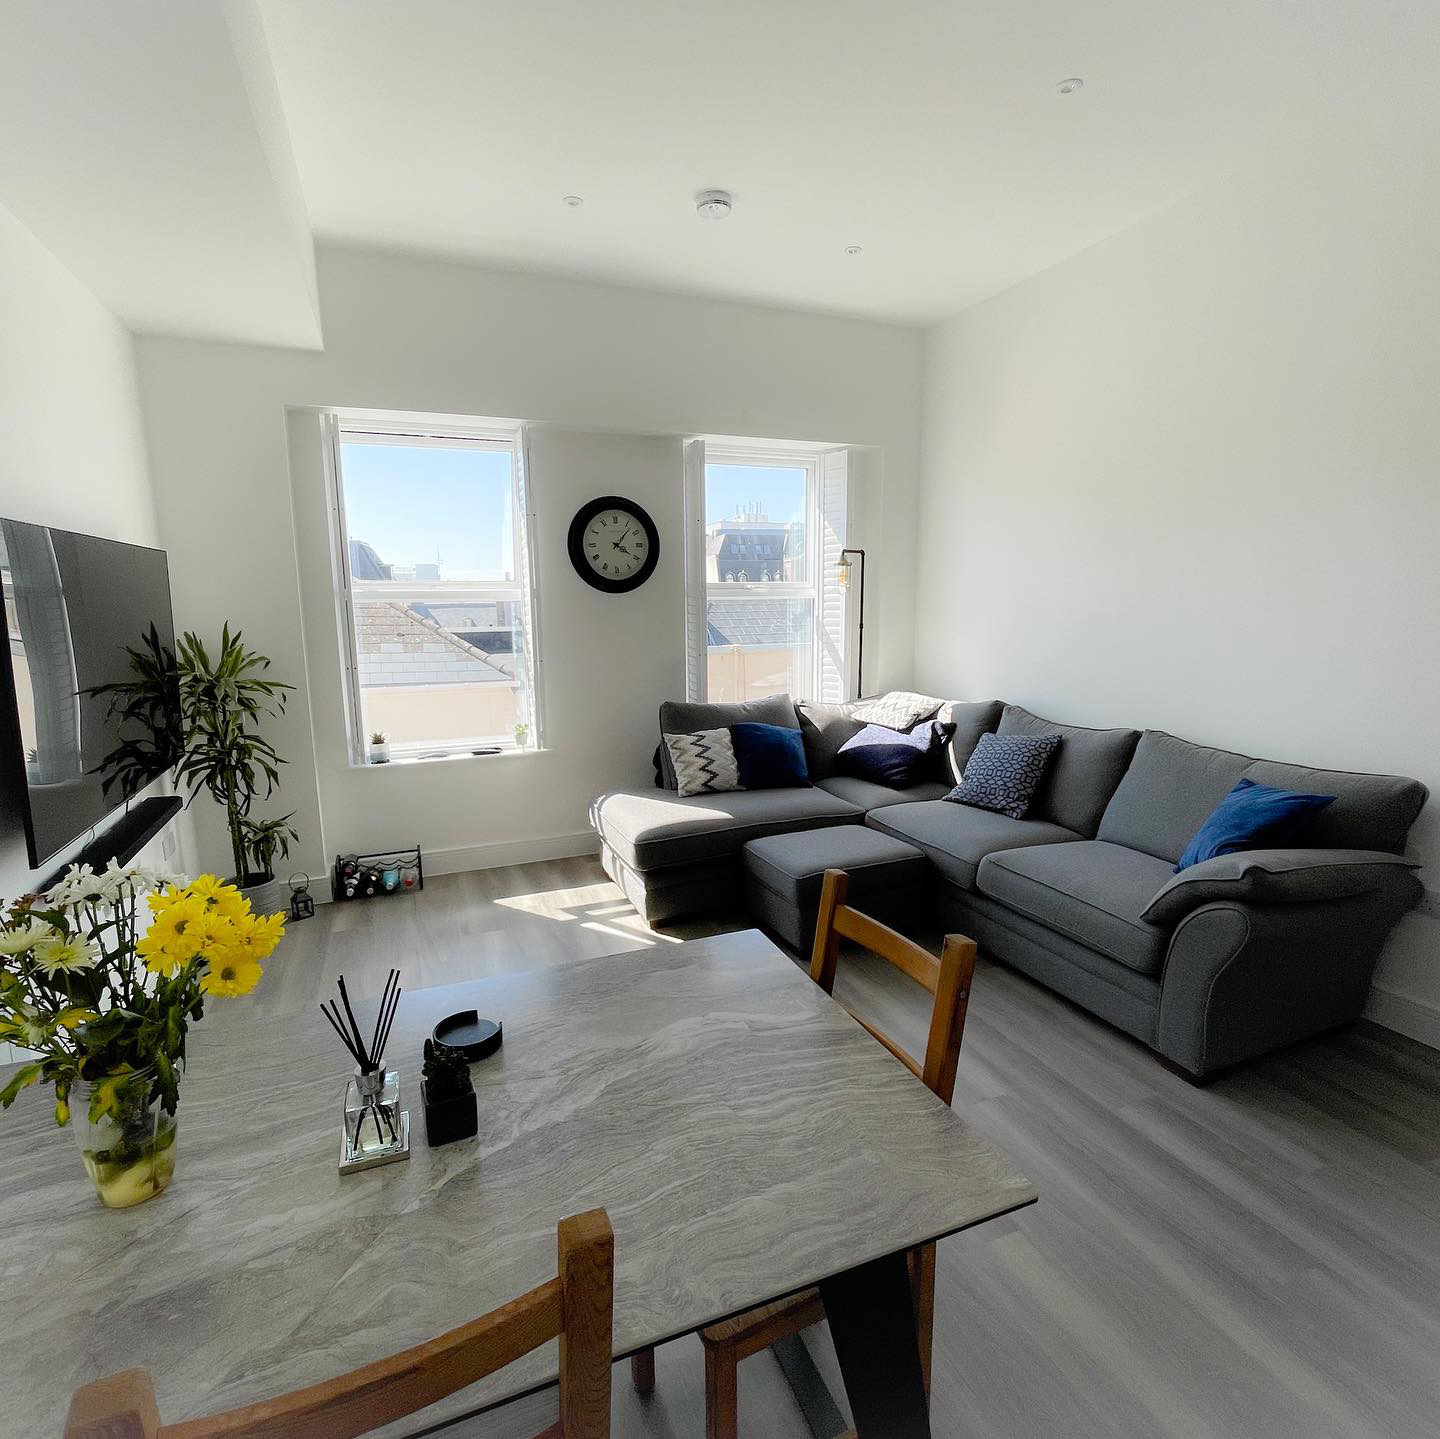 2 Bedroom Apartment Located in the Prestigious Waterloo South, with Parking